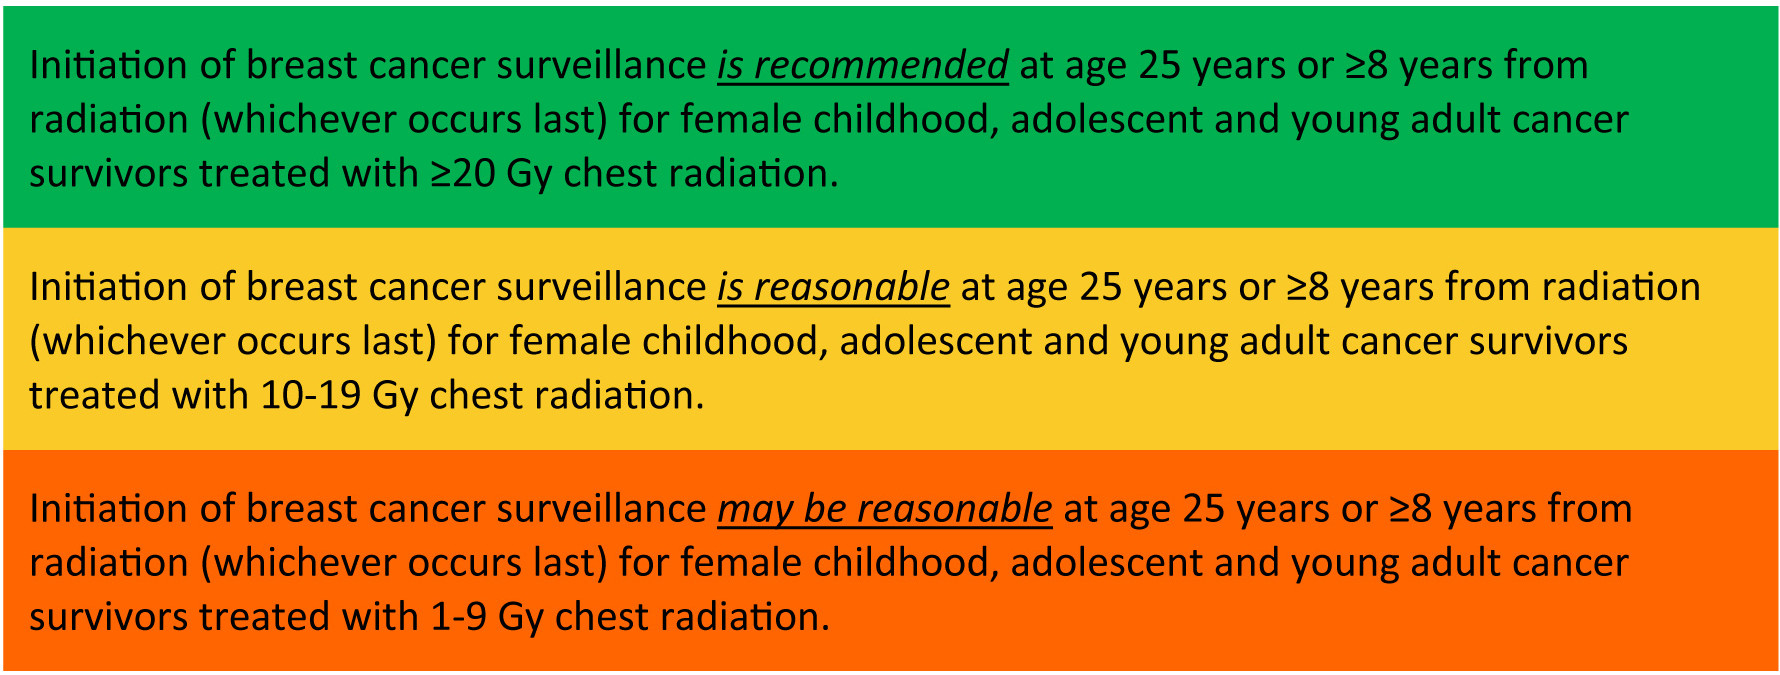 At what age should surveillance be initiated